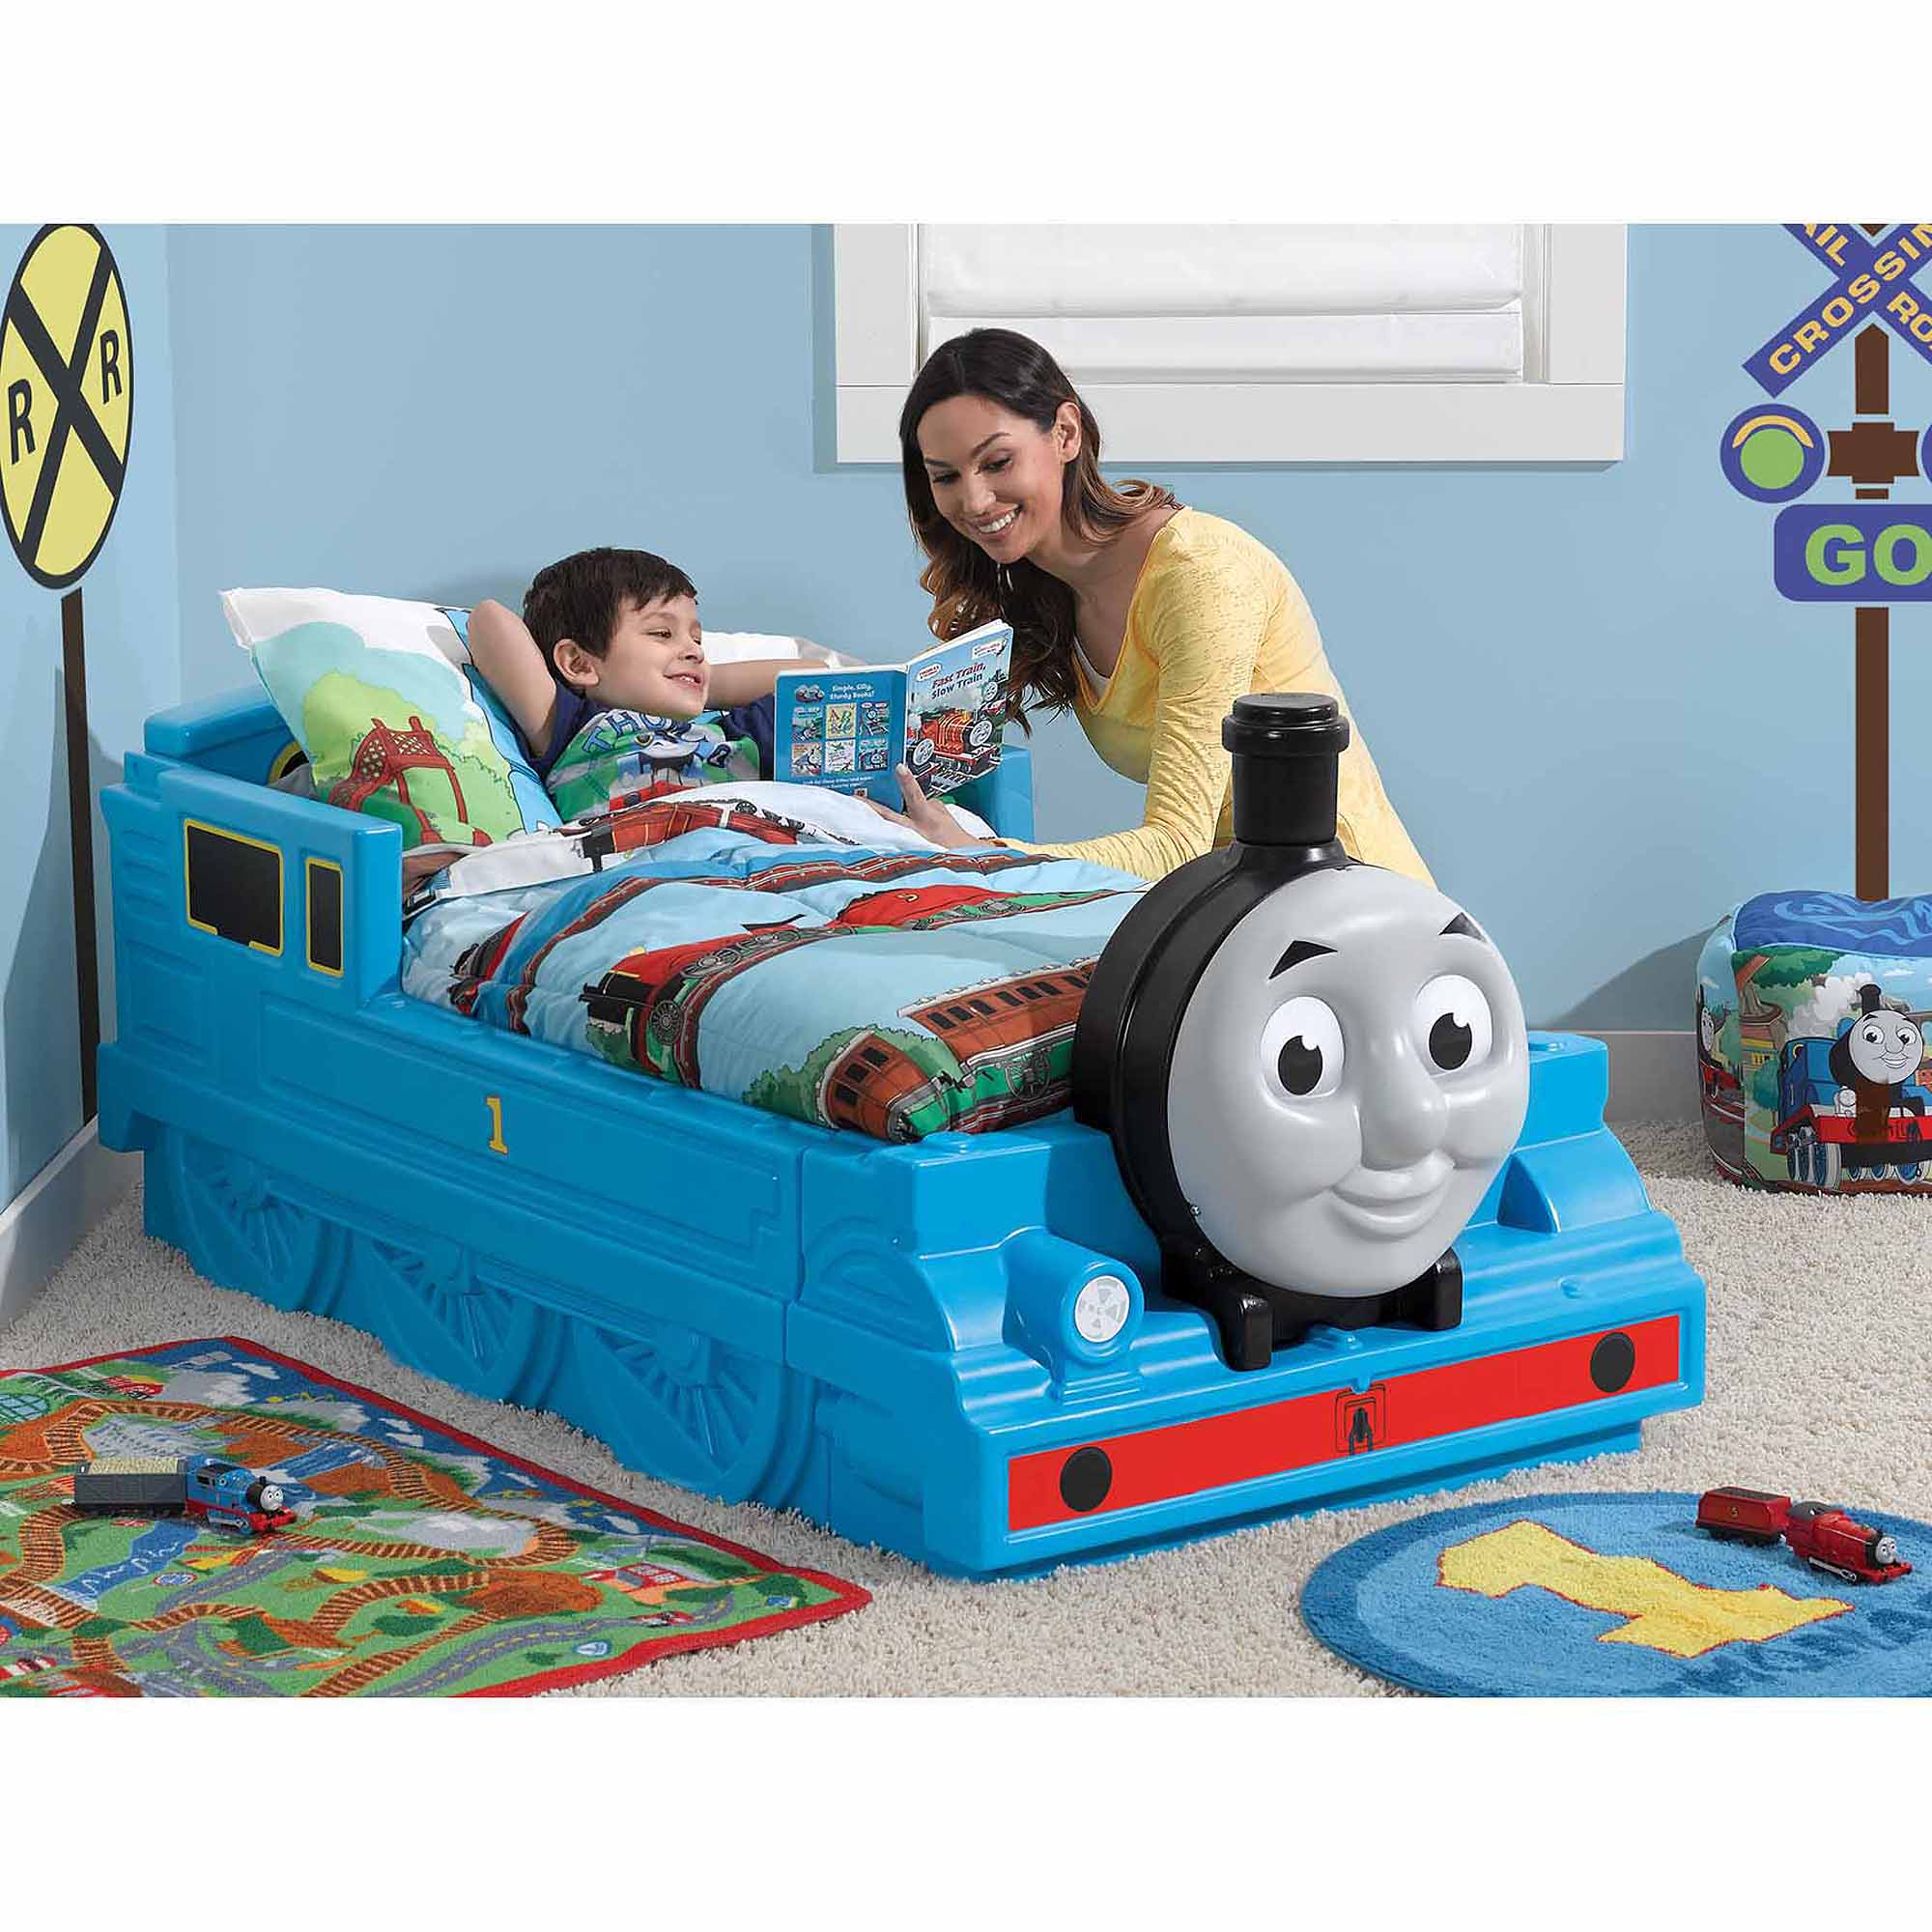 Thomas The Tank Engine Toddler Bed   Walmart.com